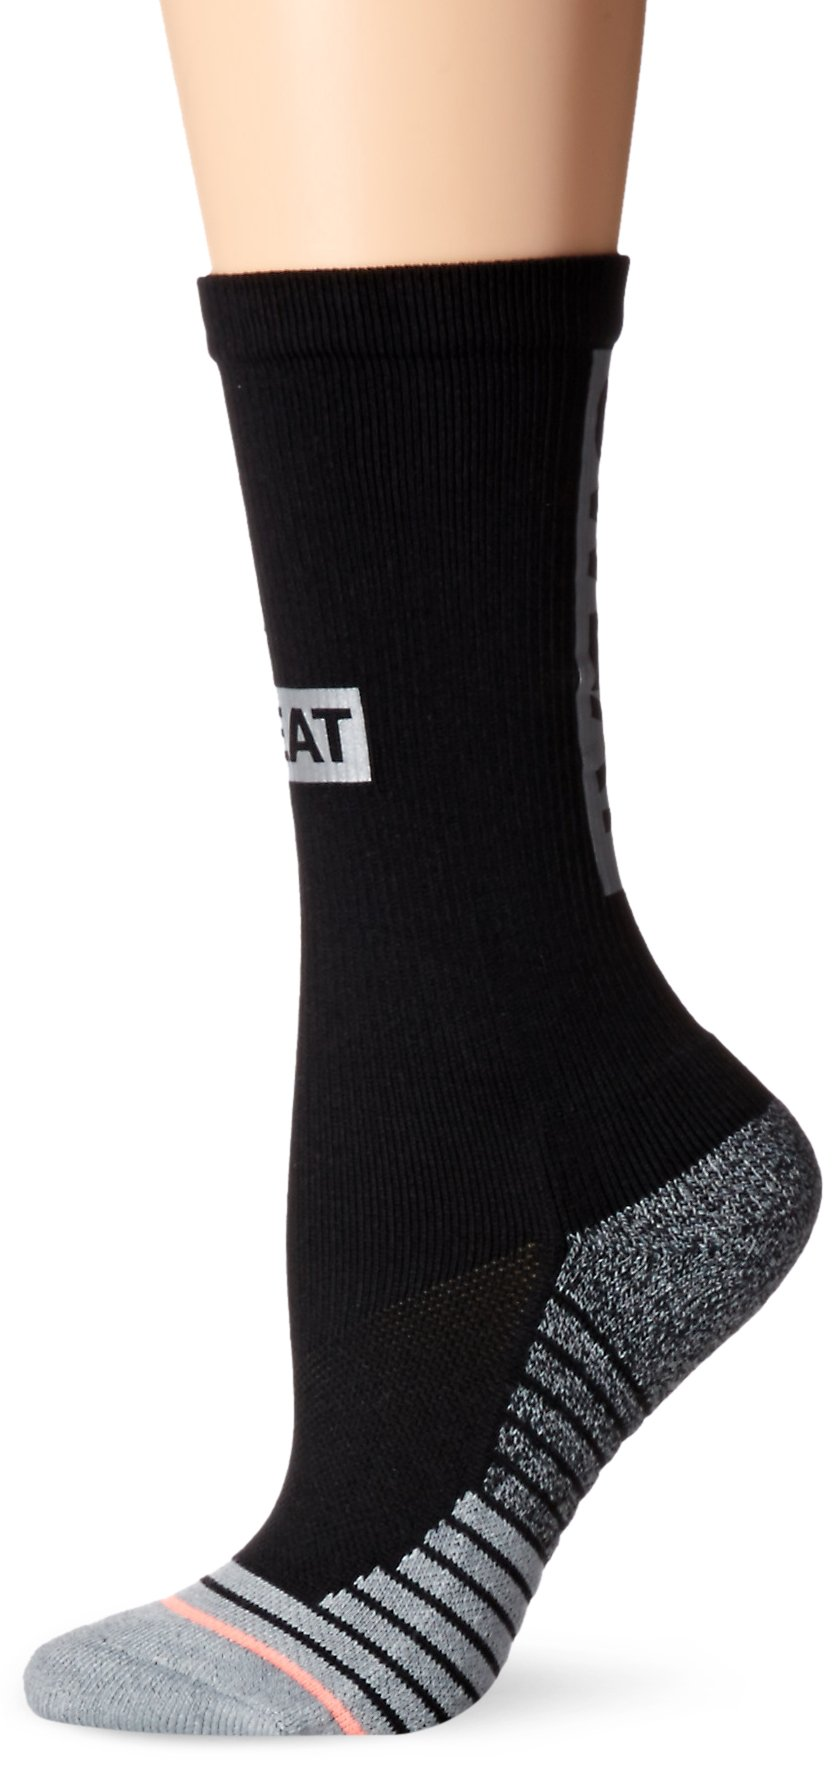 Stance Women's Support Athletic Crew Sock, Black, Small